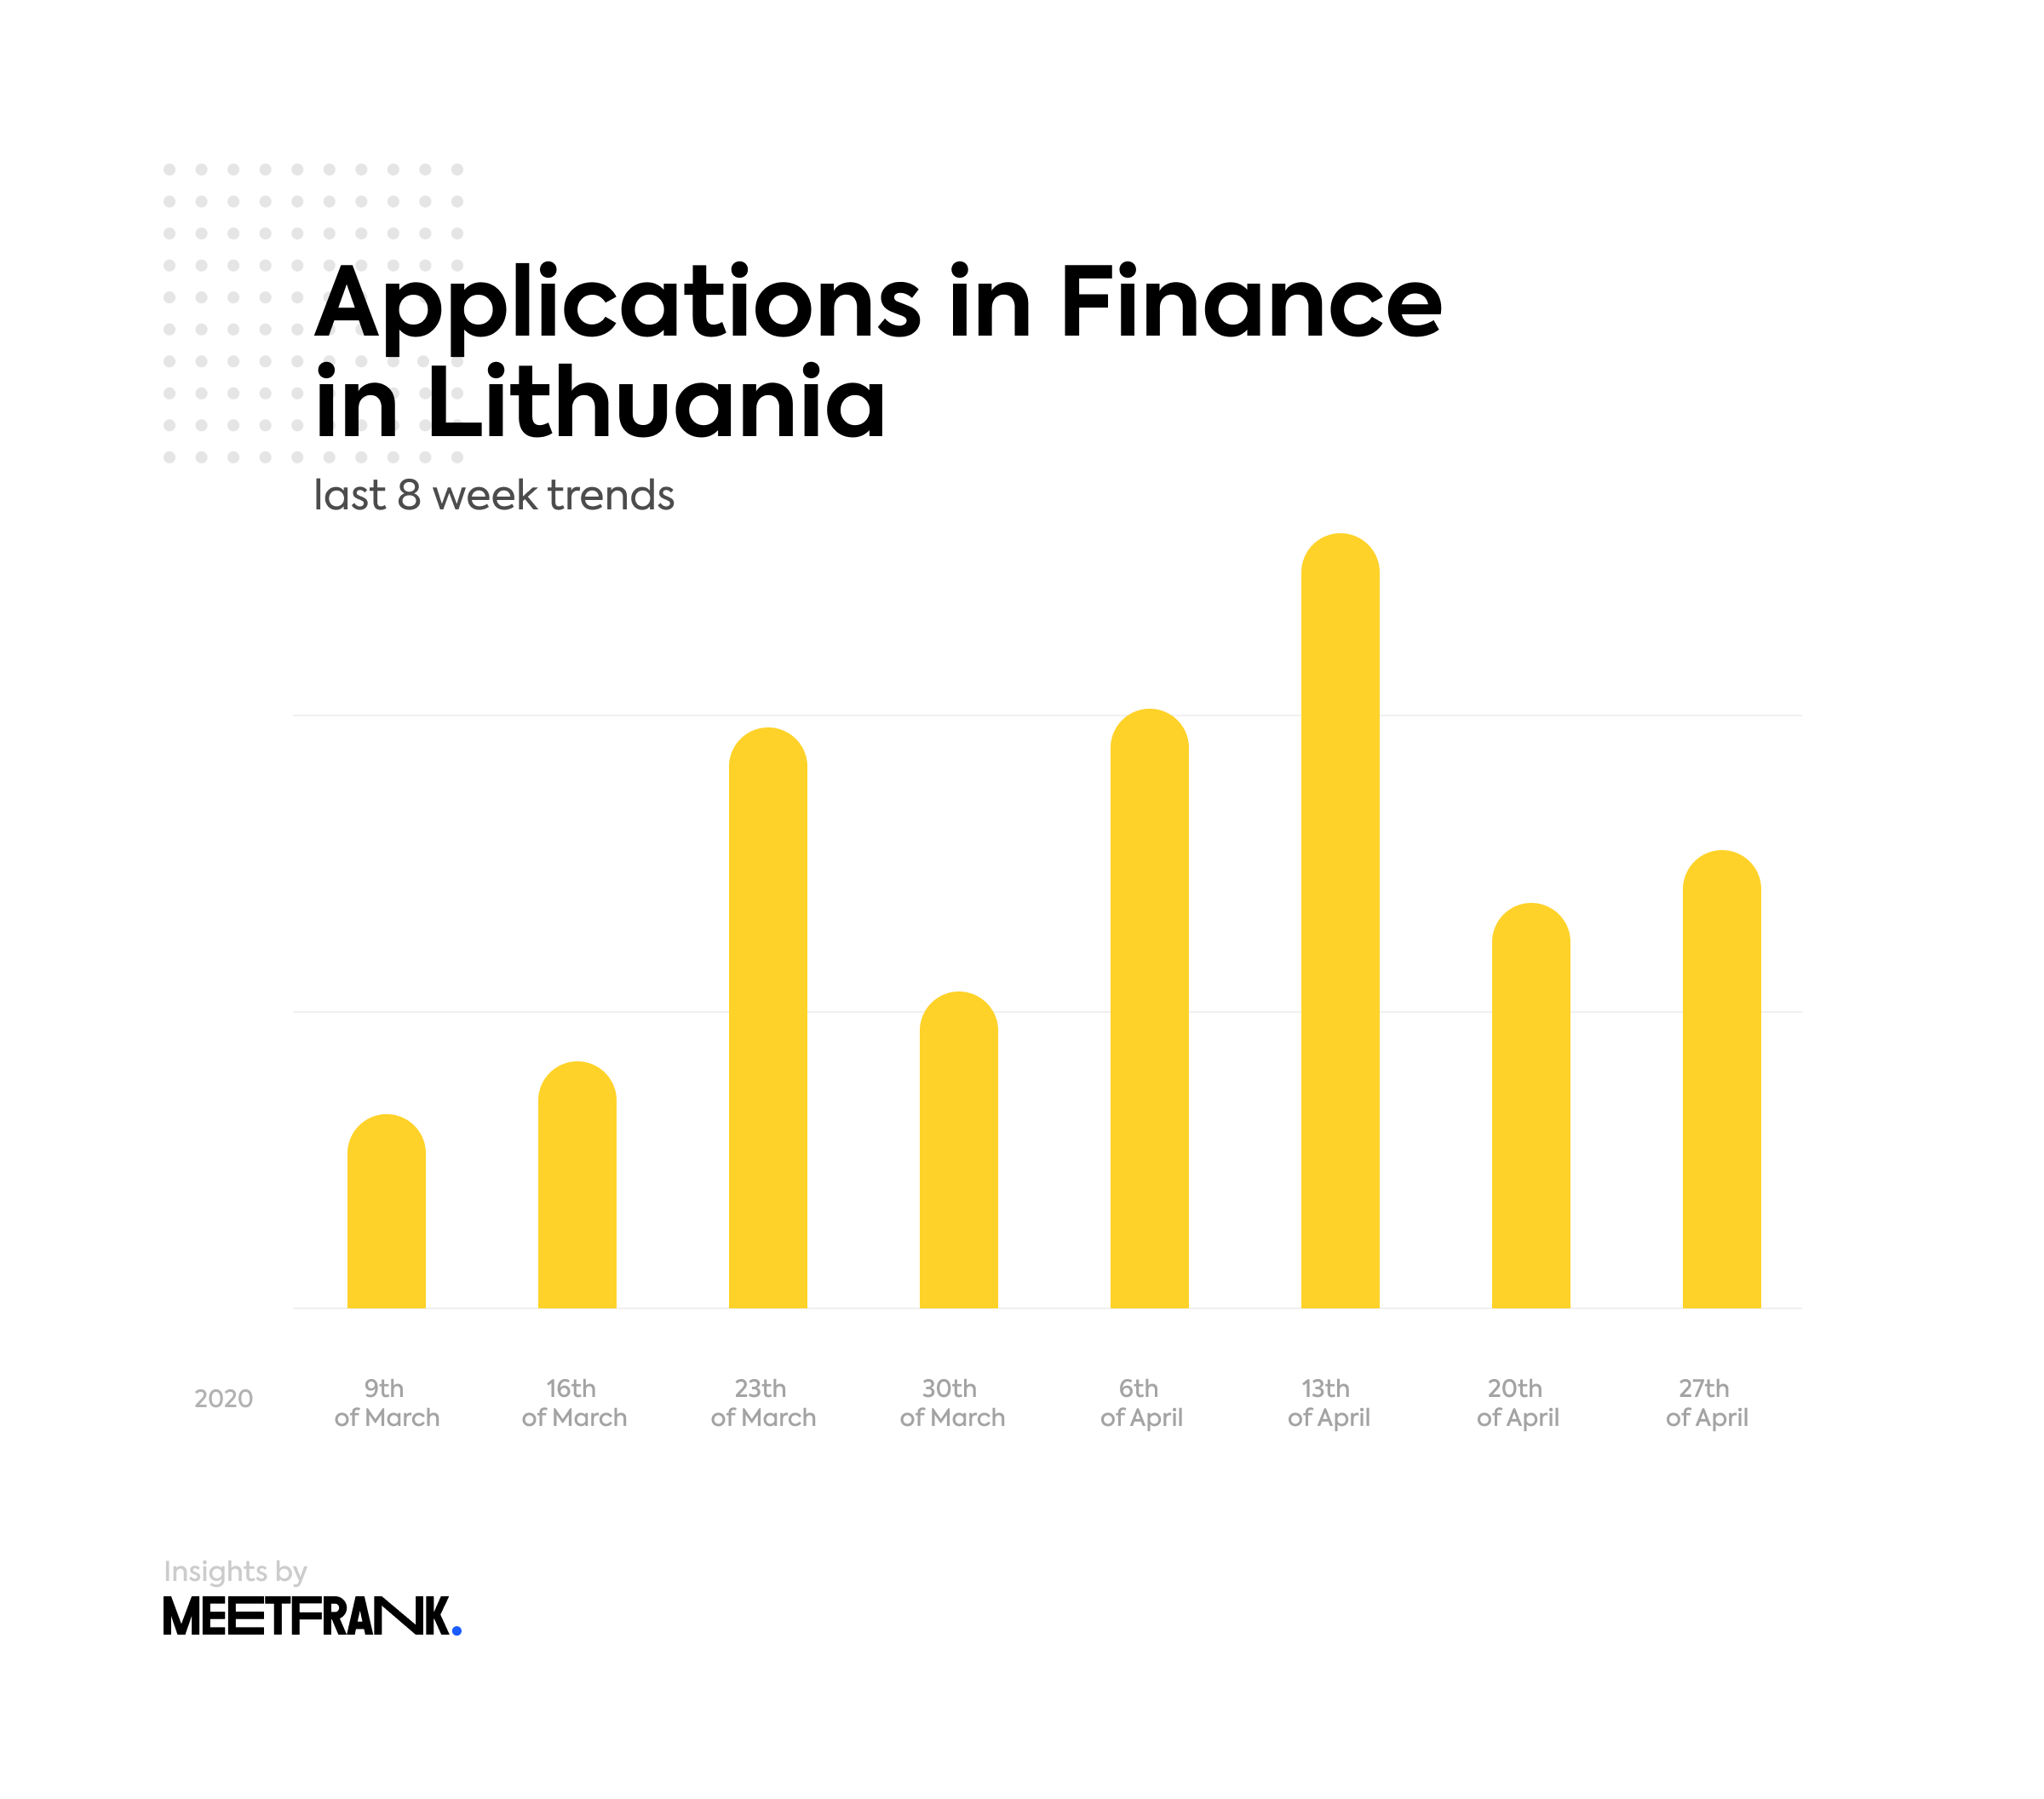 job applications in finance in Lithuania